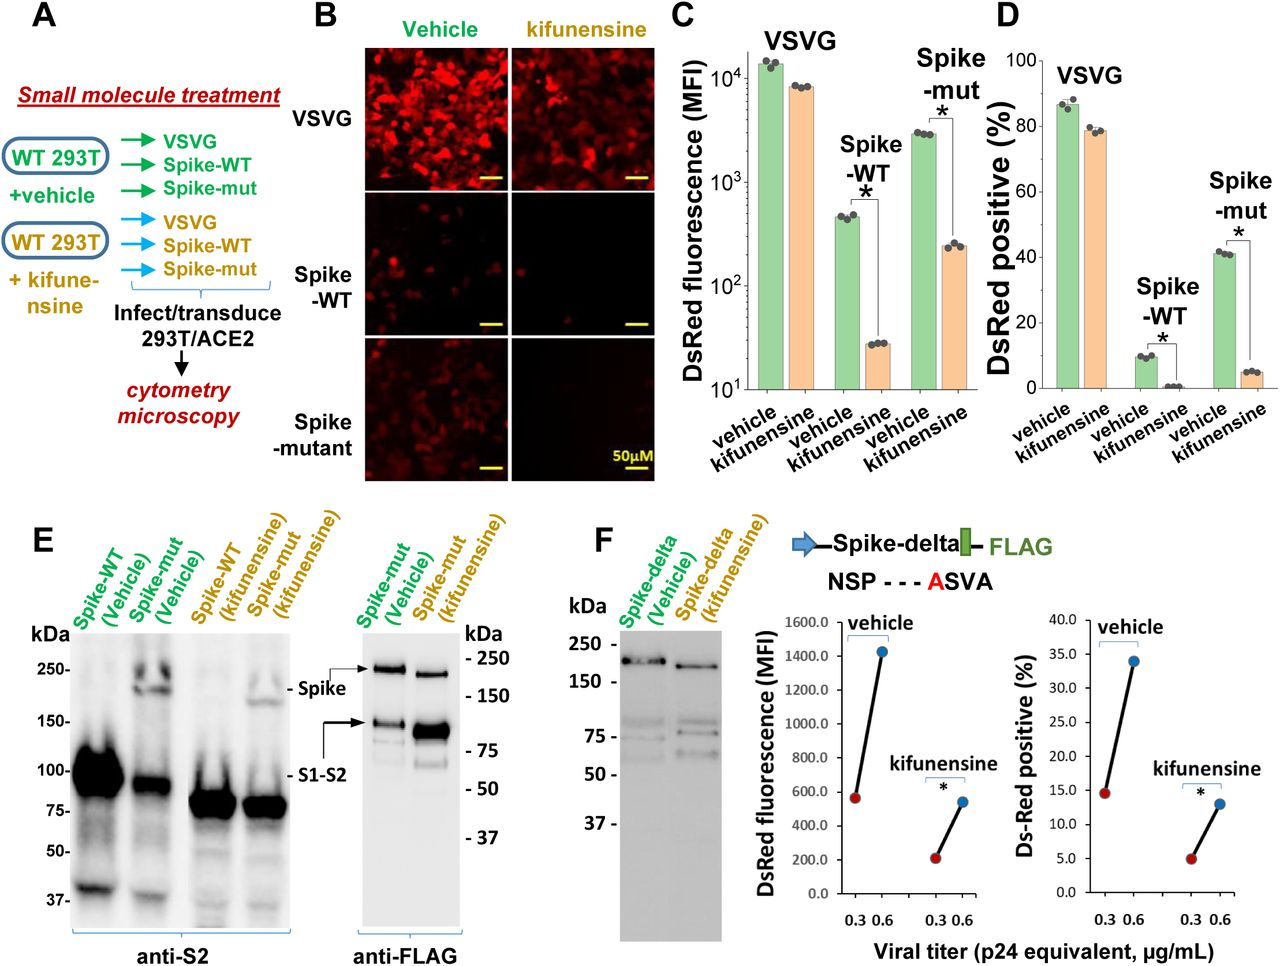 Mannosidase-I blockade using kifunensine inhibits SARS-CoV-2 pseudovirus entry into 293T/ACE2 cells. A . VSVG, Spike-WT and Spike-mutant pseudovirus were produced in the presence of 15µM kifunensine or vehicle control. The 6 viruses were added to 293T/ACE2 at equal titer. B-D . Microscopy (panel B) and cytometry (panel C, D) show ∼90% loss of viral infection in the case of Spike-WT and Spike-mutant virus upon kifunensine treatment (* P